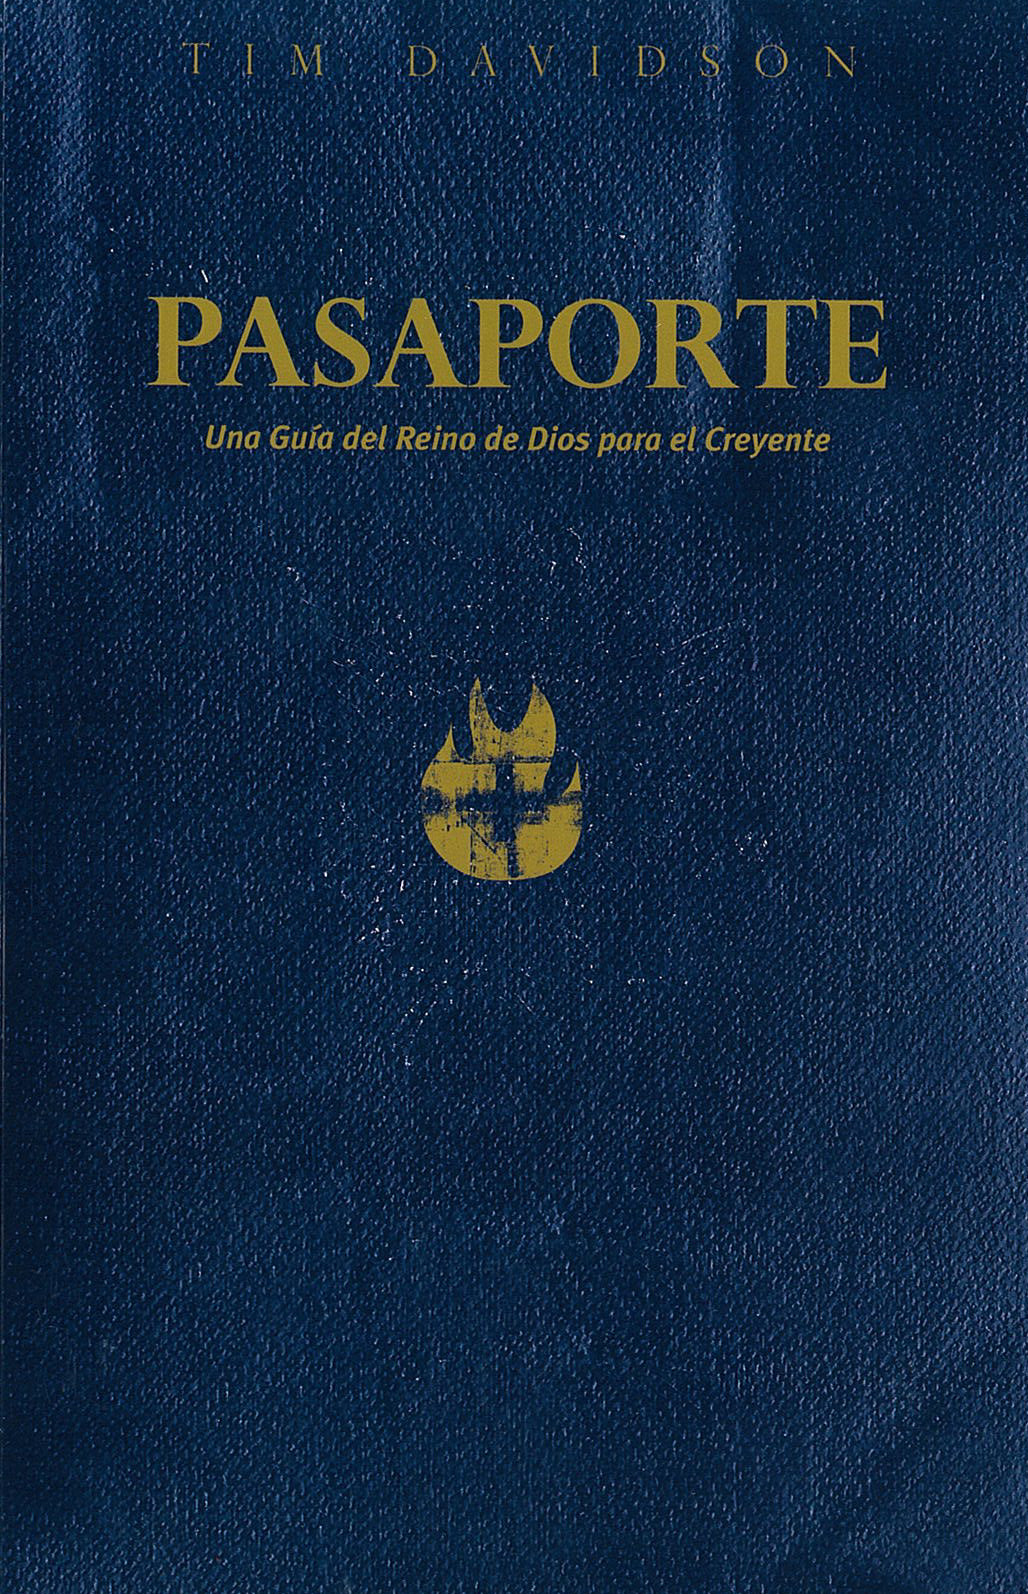 Pasaporte [eBook]